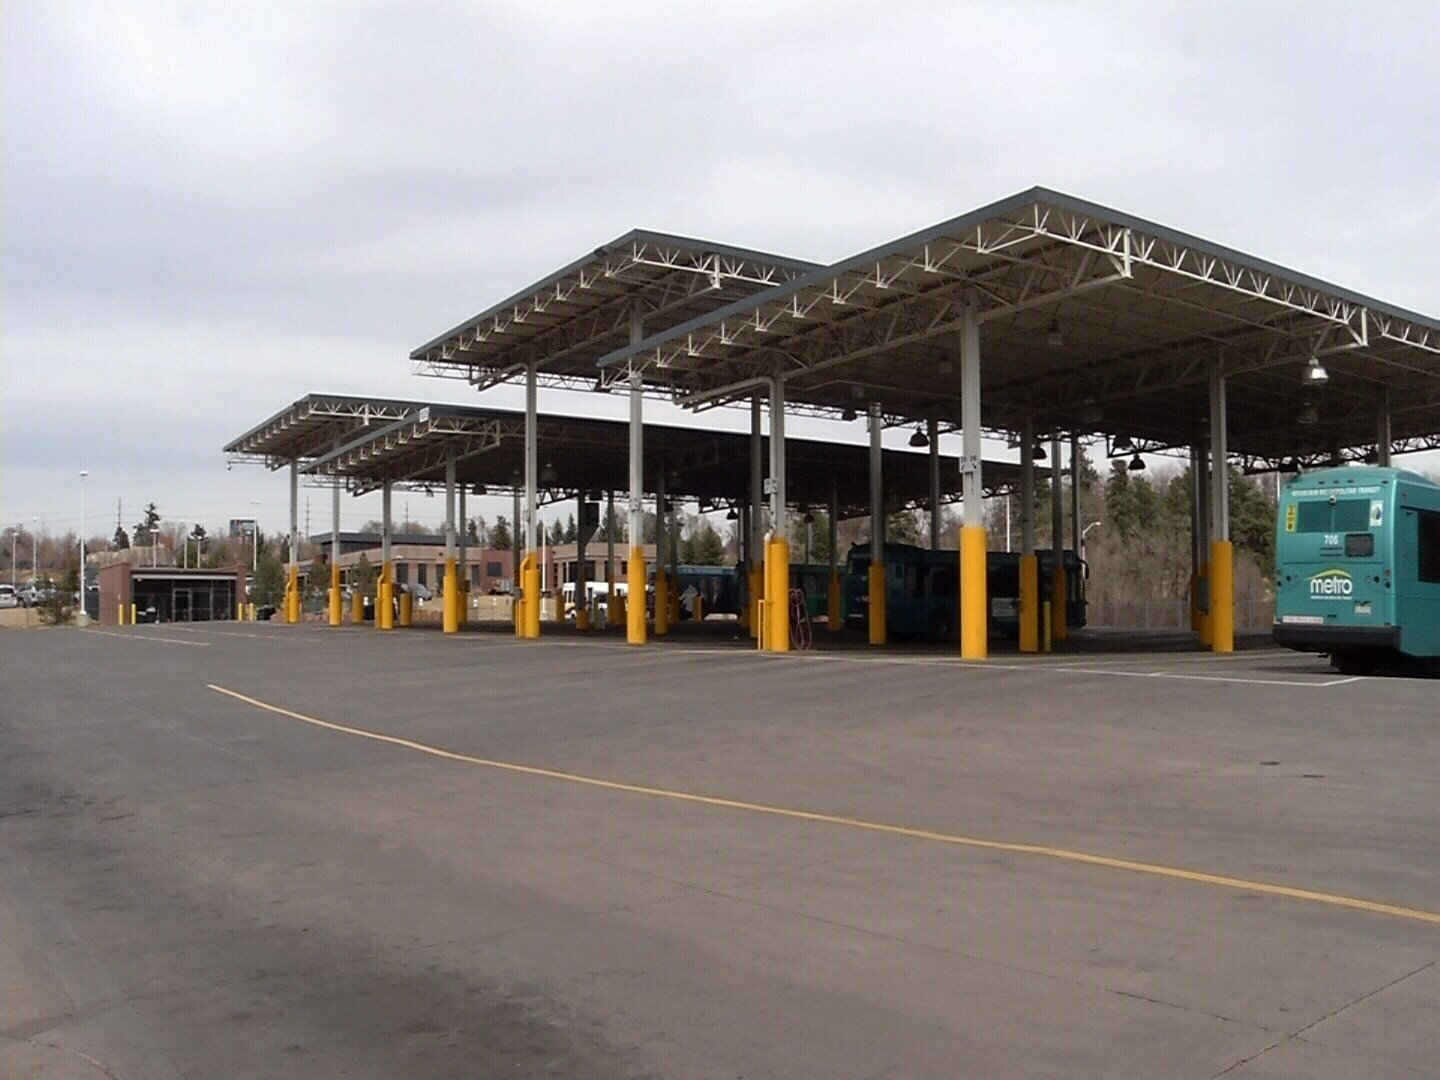 Mountain Metro Transit in Colorado Springs received a $750,000 grant from the Federal Transit Administration to build a garage for its buses.